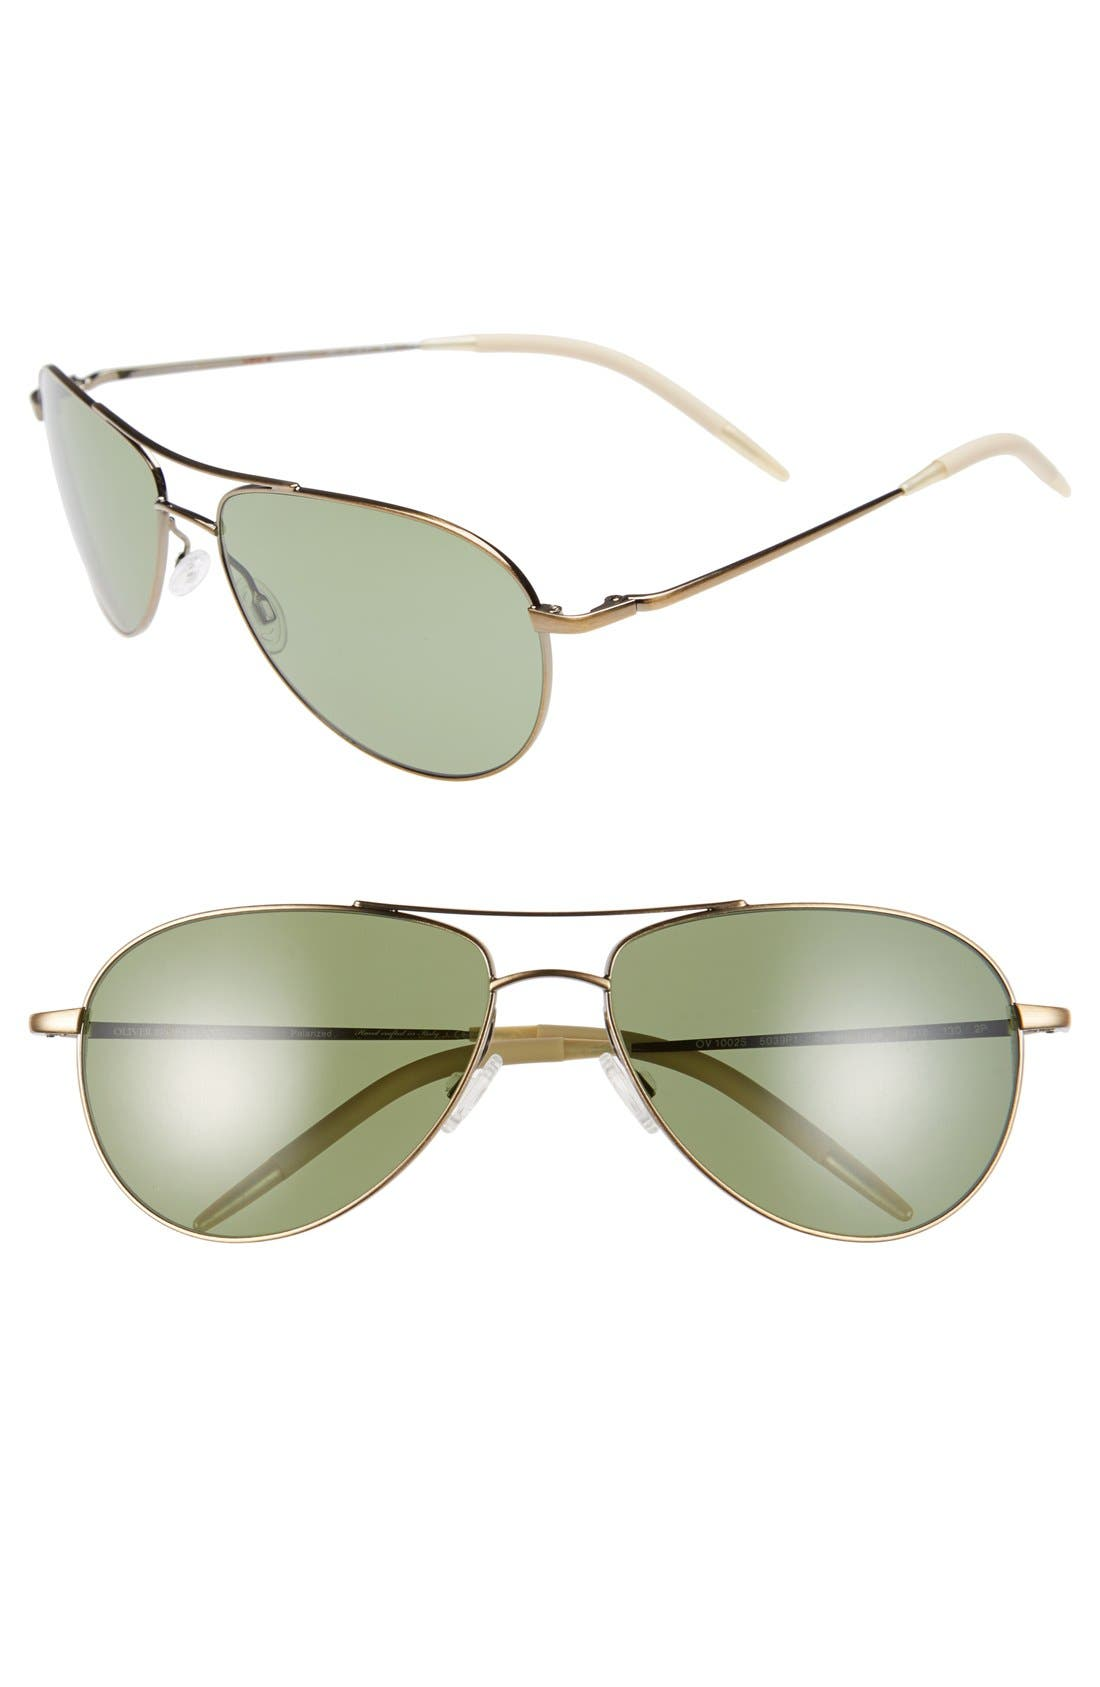 Main Image - Oliver Peoples 'Benedict' 59mm Polarized Aviator Sunglasses